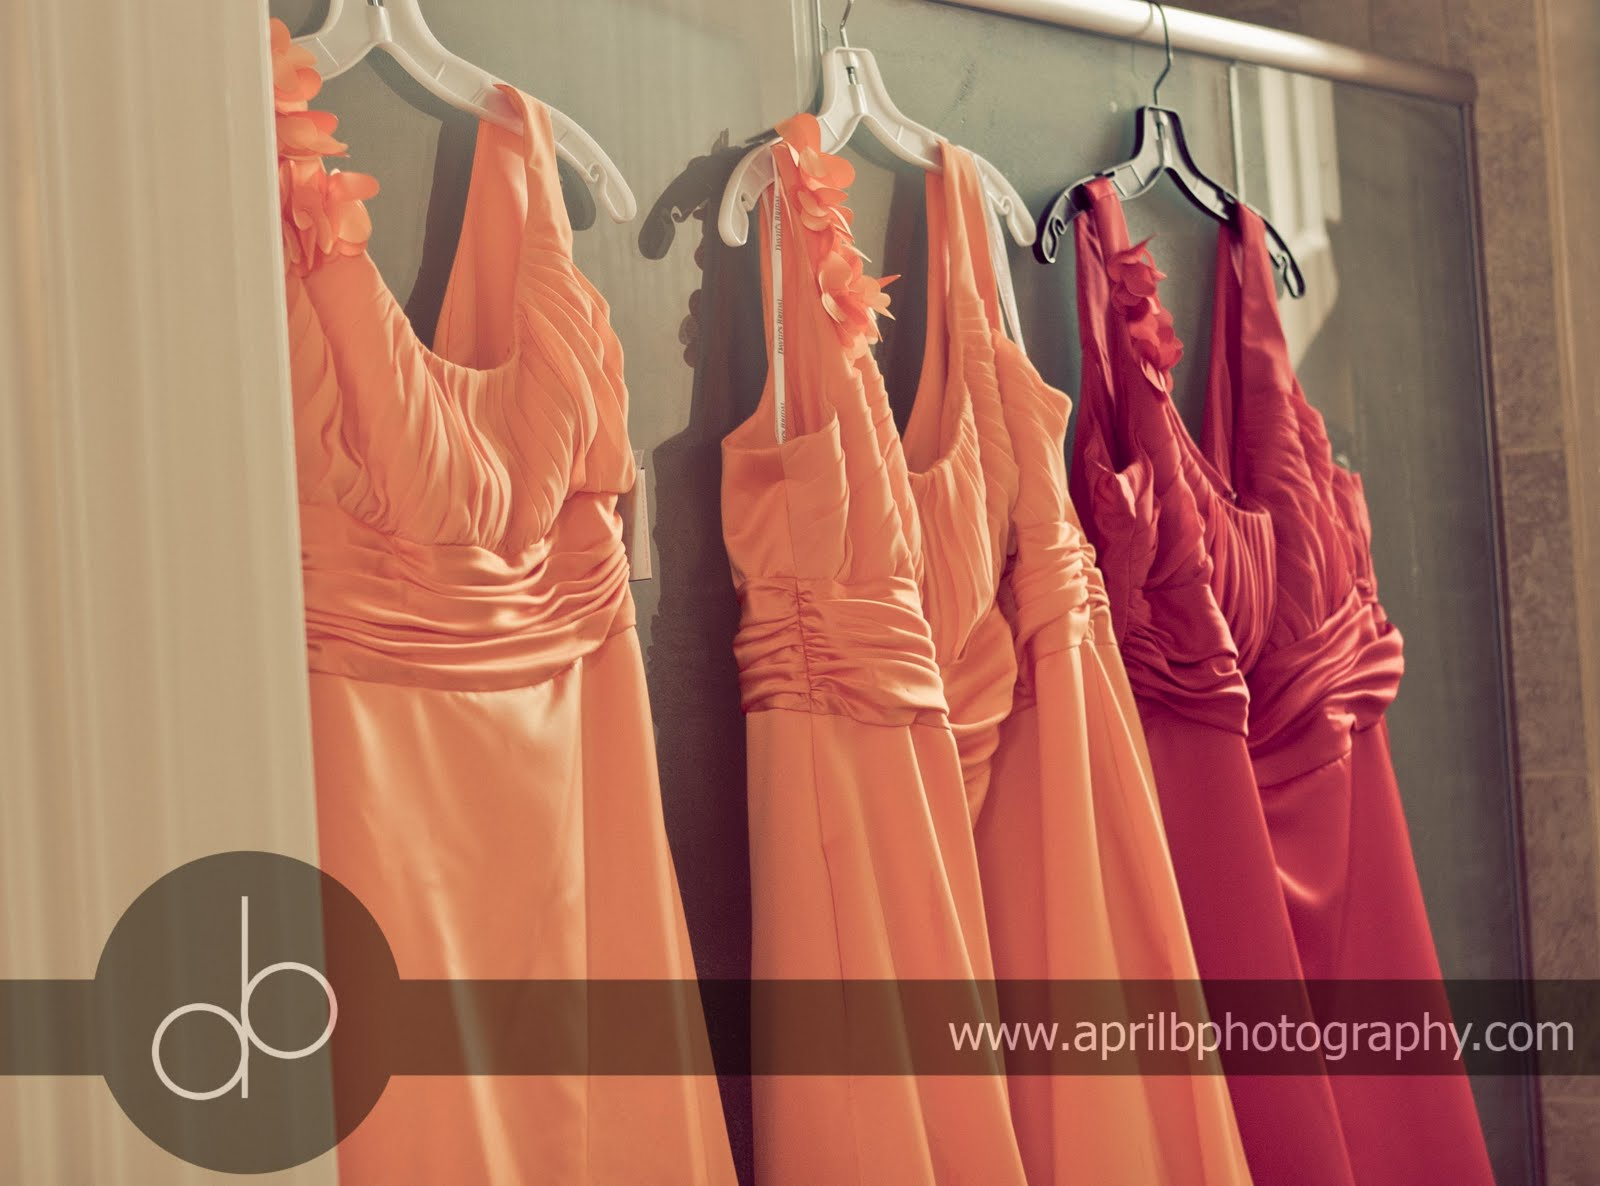 Bridal Gowns Lynchburg Va : April b photography lipford wedding craddock terry